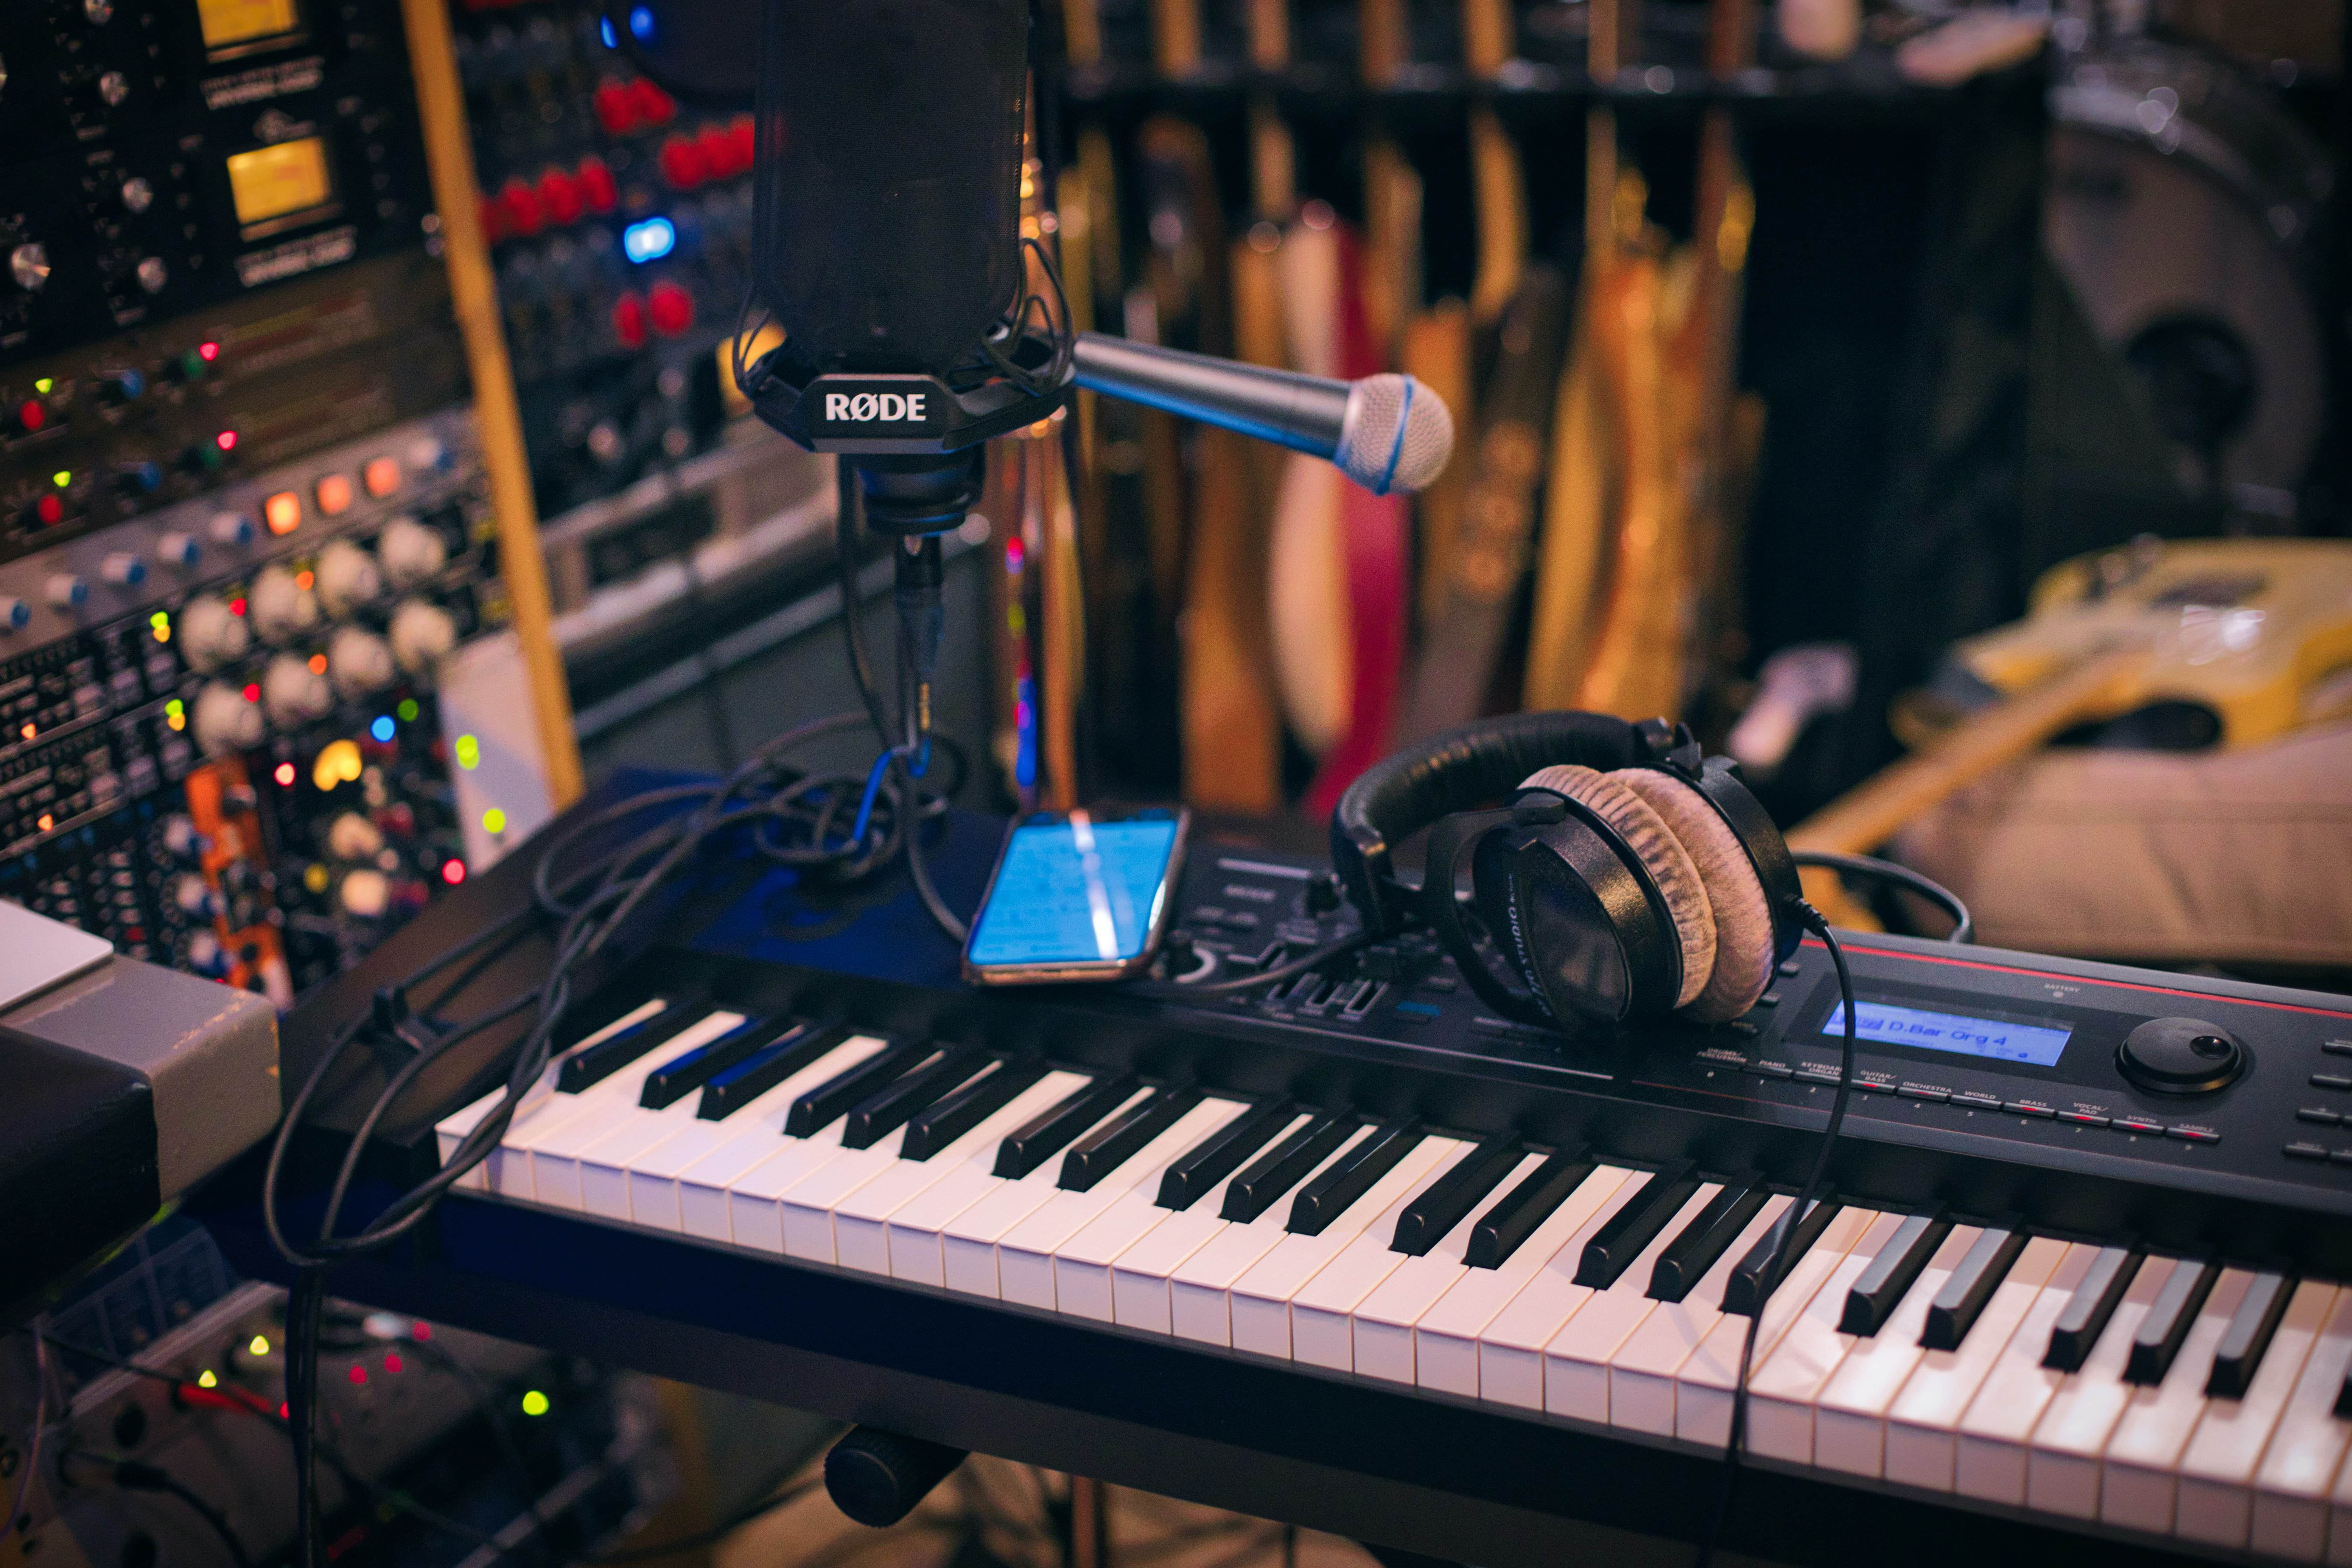 small microphone stand positioned on keyboard with music production equipment in background